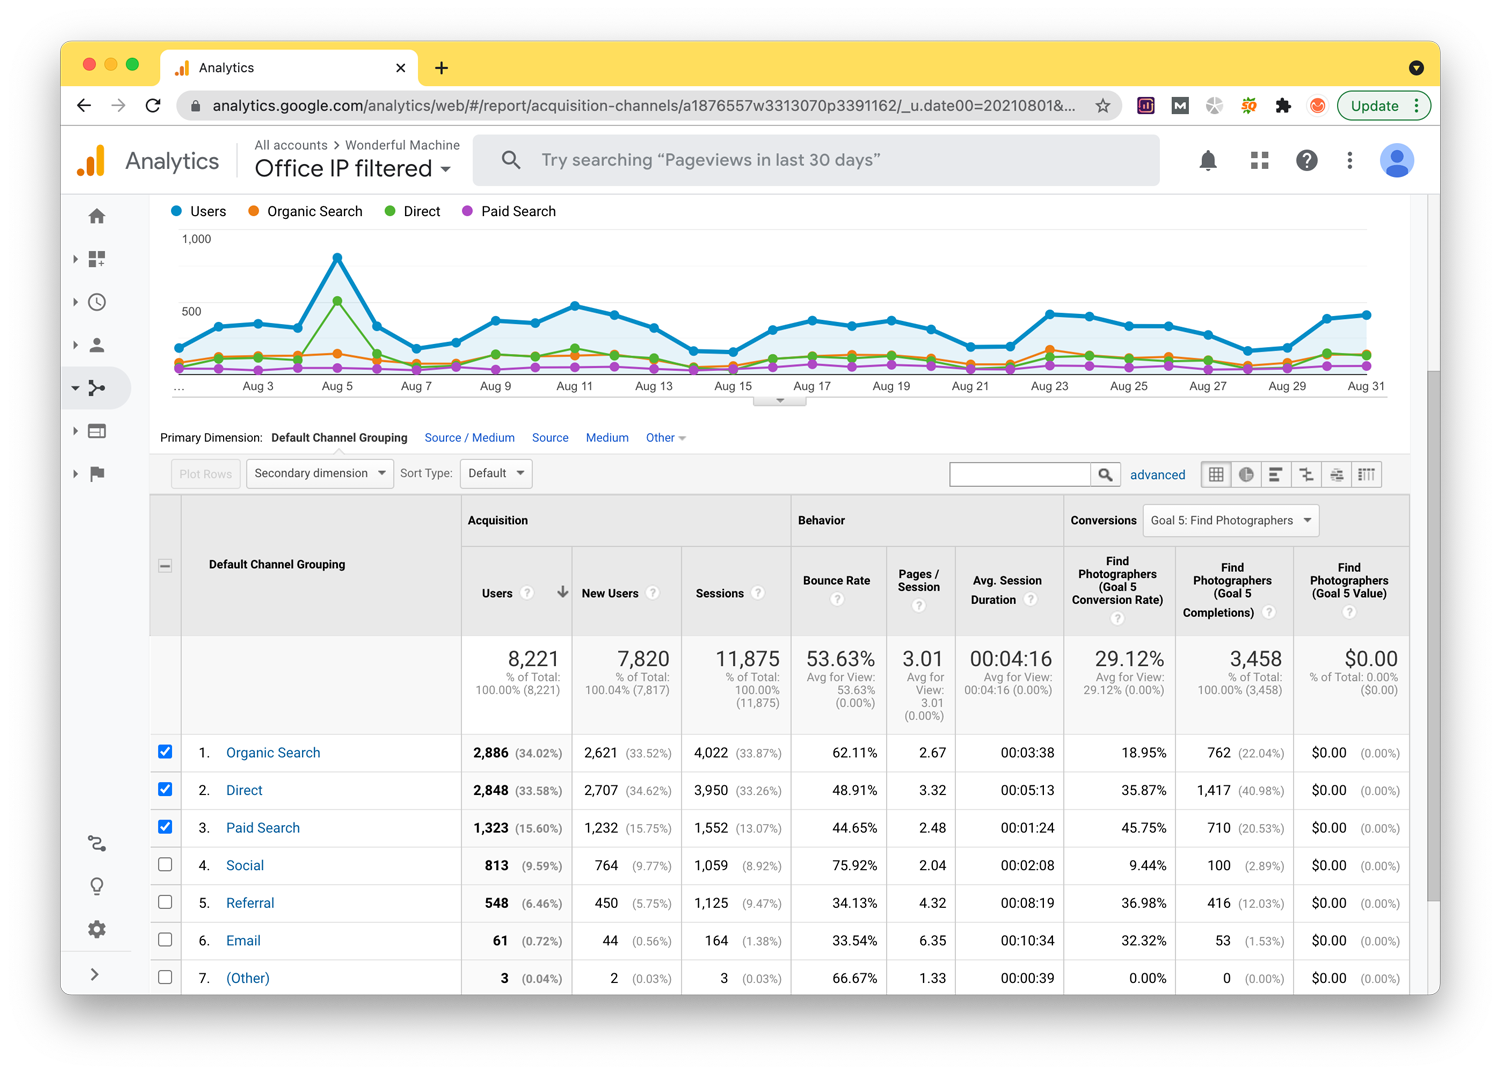 A screenshot of Google Analytics' August 2021 channel numbers, with the organic search, direct, and paid search plotted